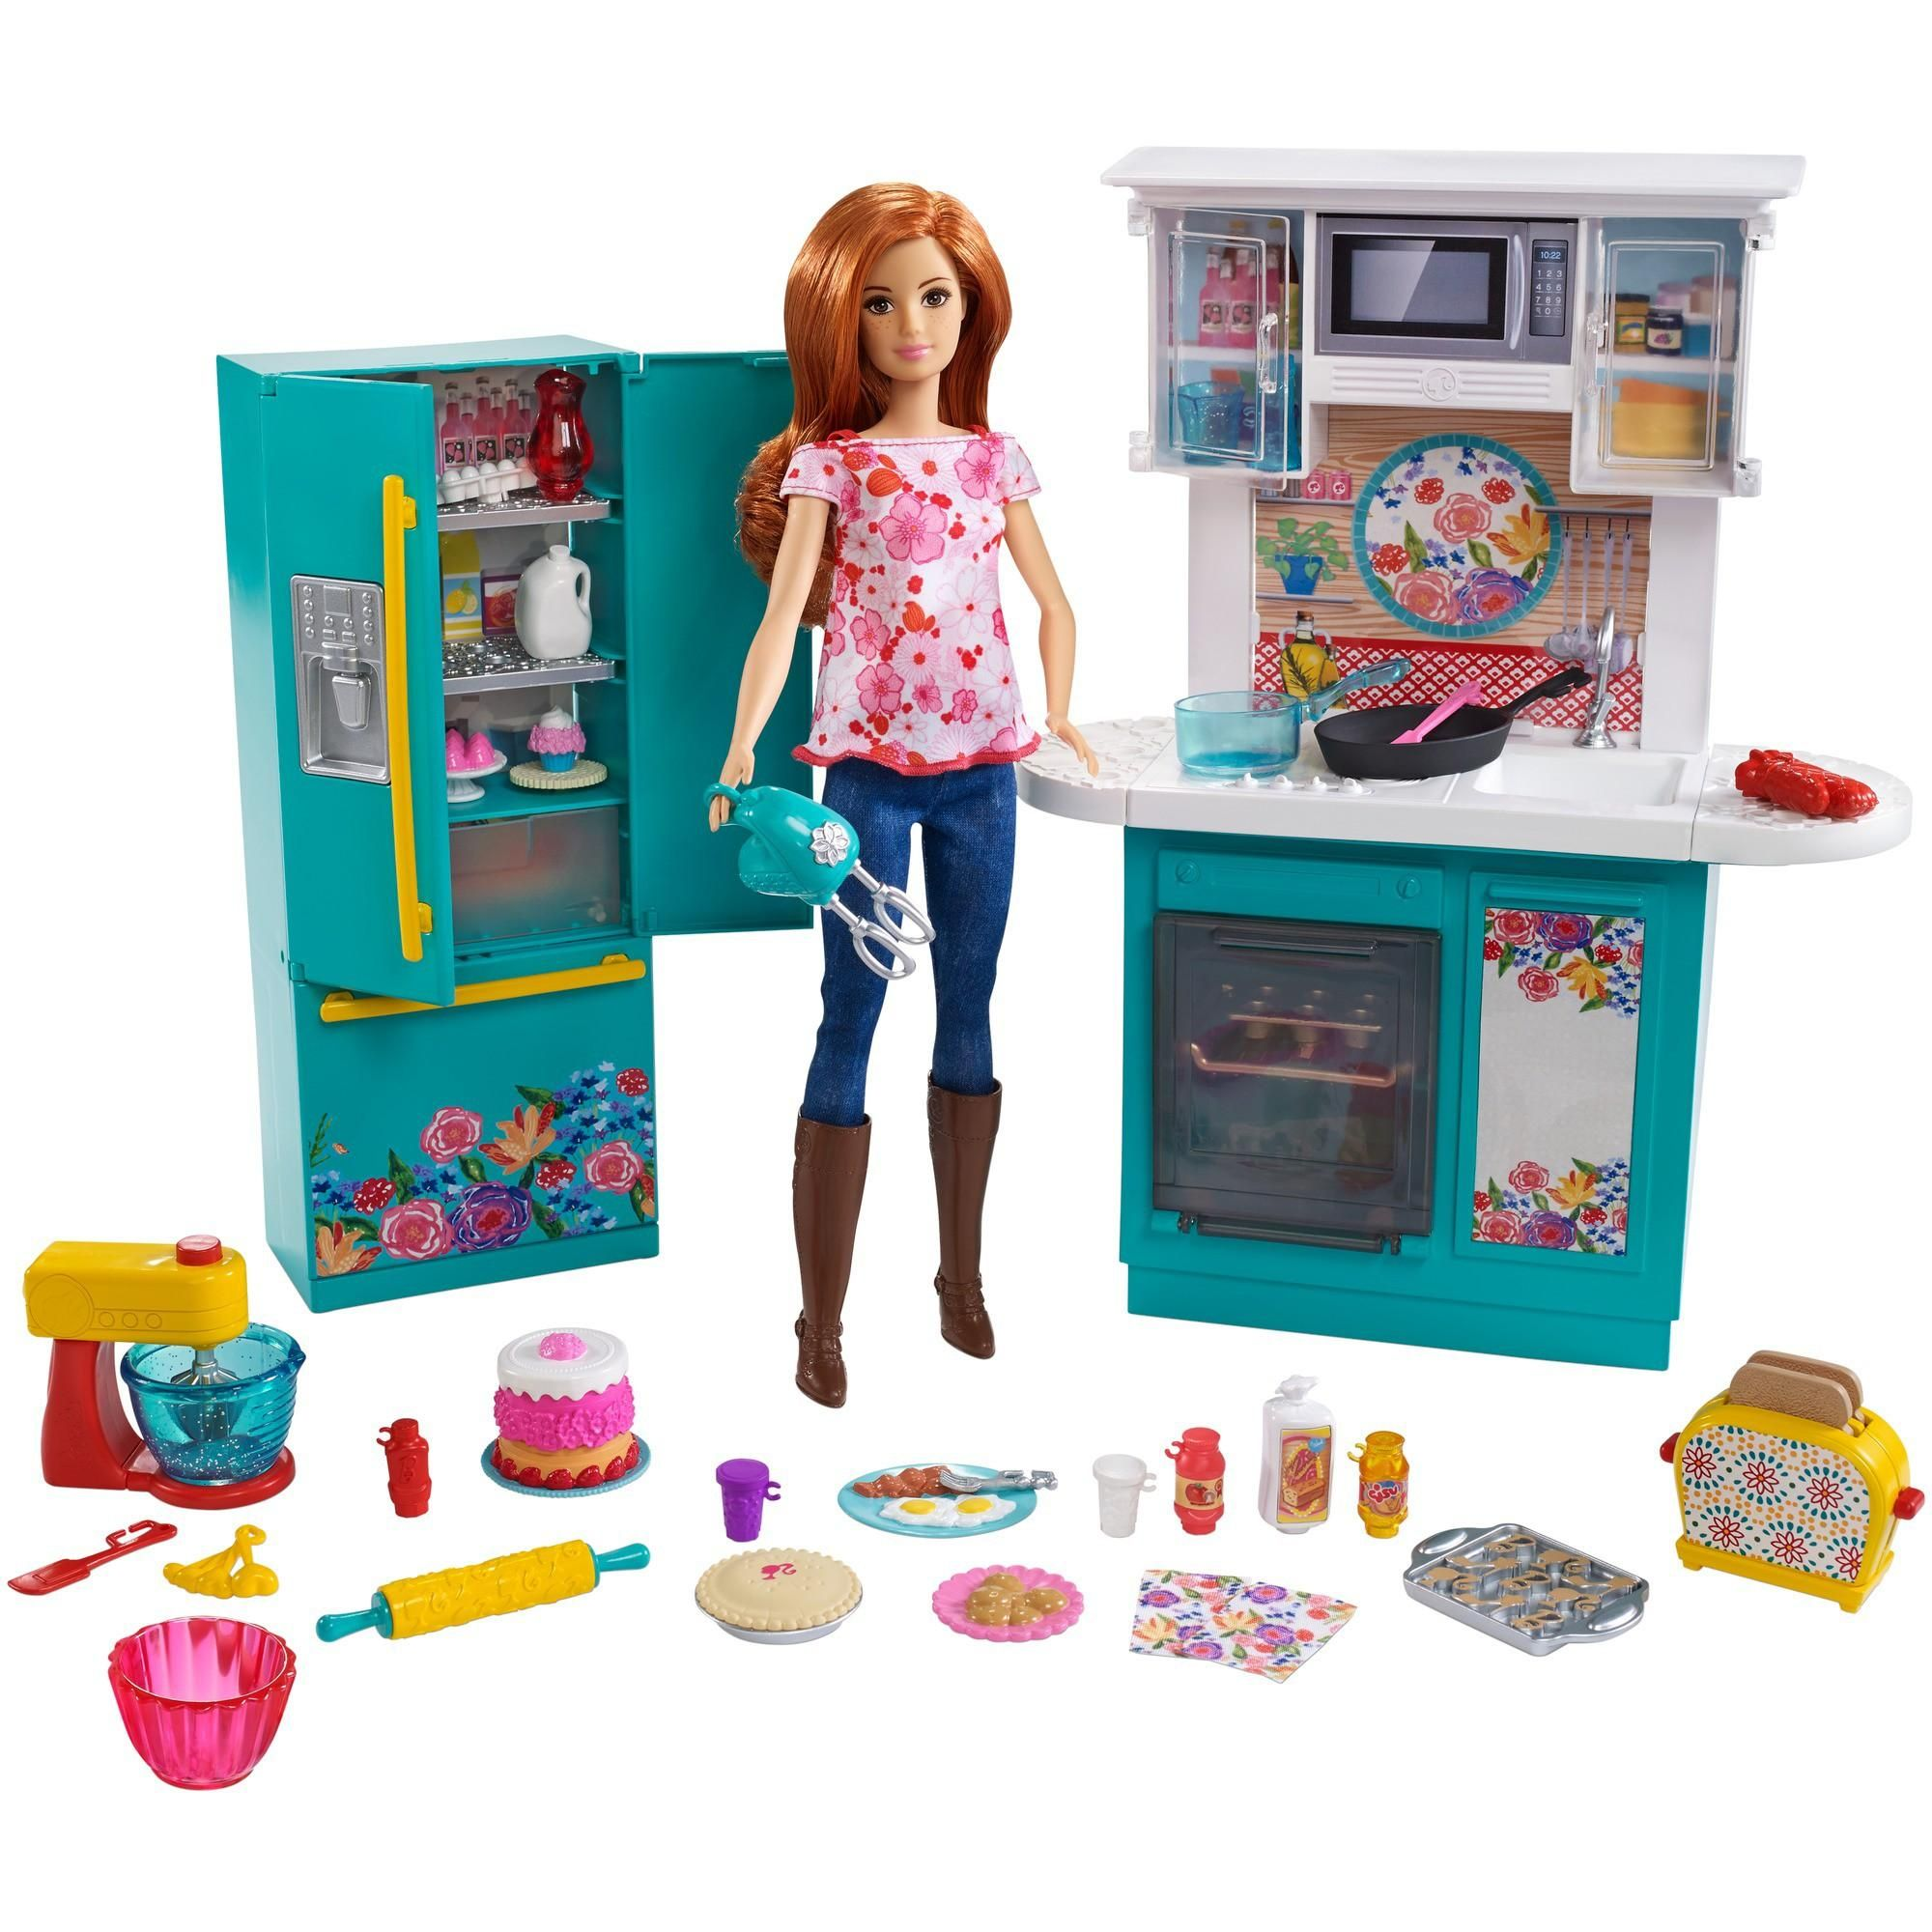 Pioneer Woman Barbie Playset On Sale At Walmart - Ree -3157